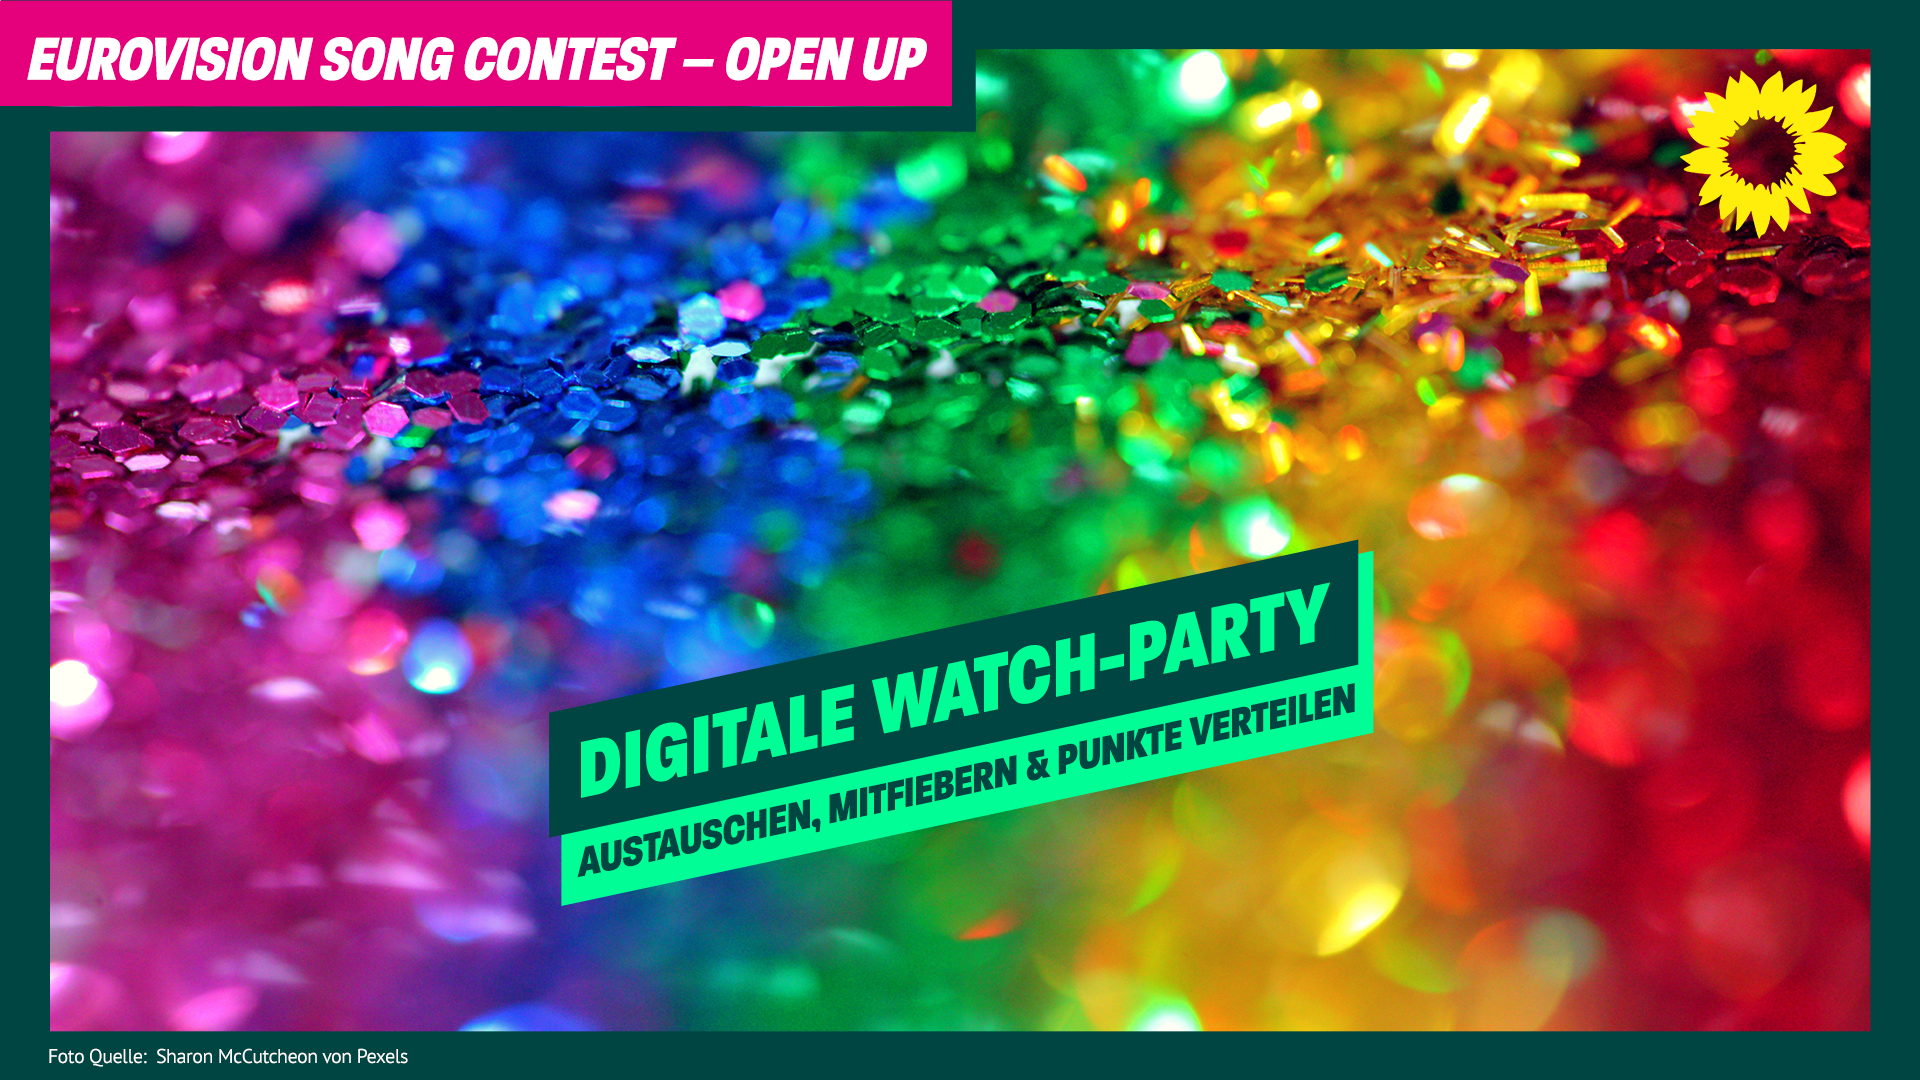 Digitale Watch-Party zum Eurovision Song Contest